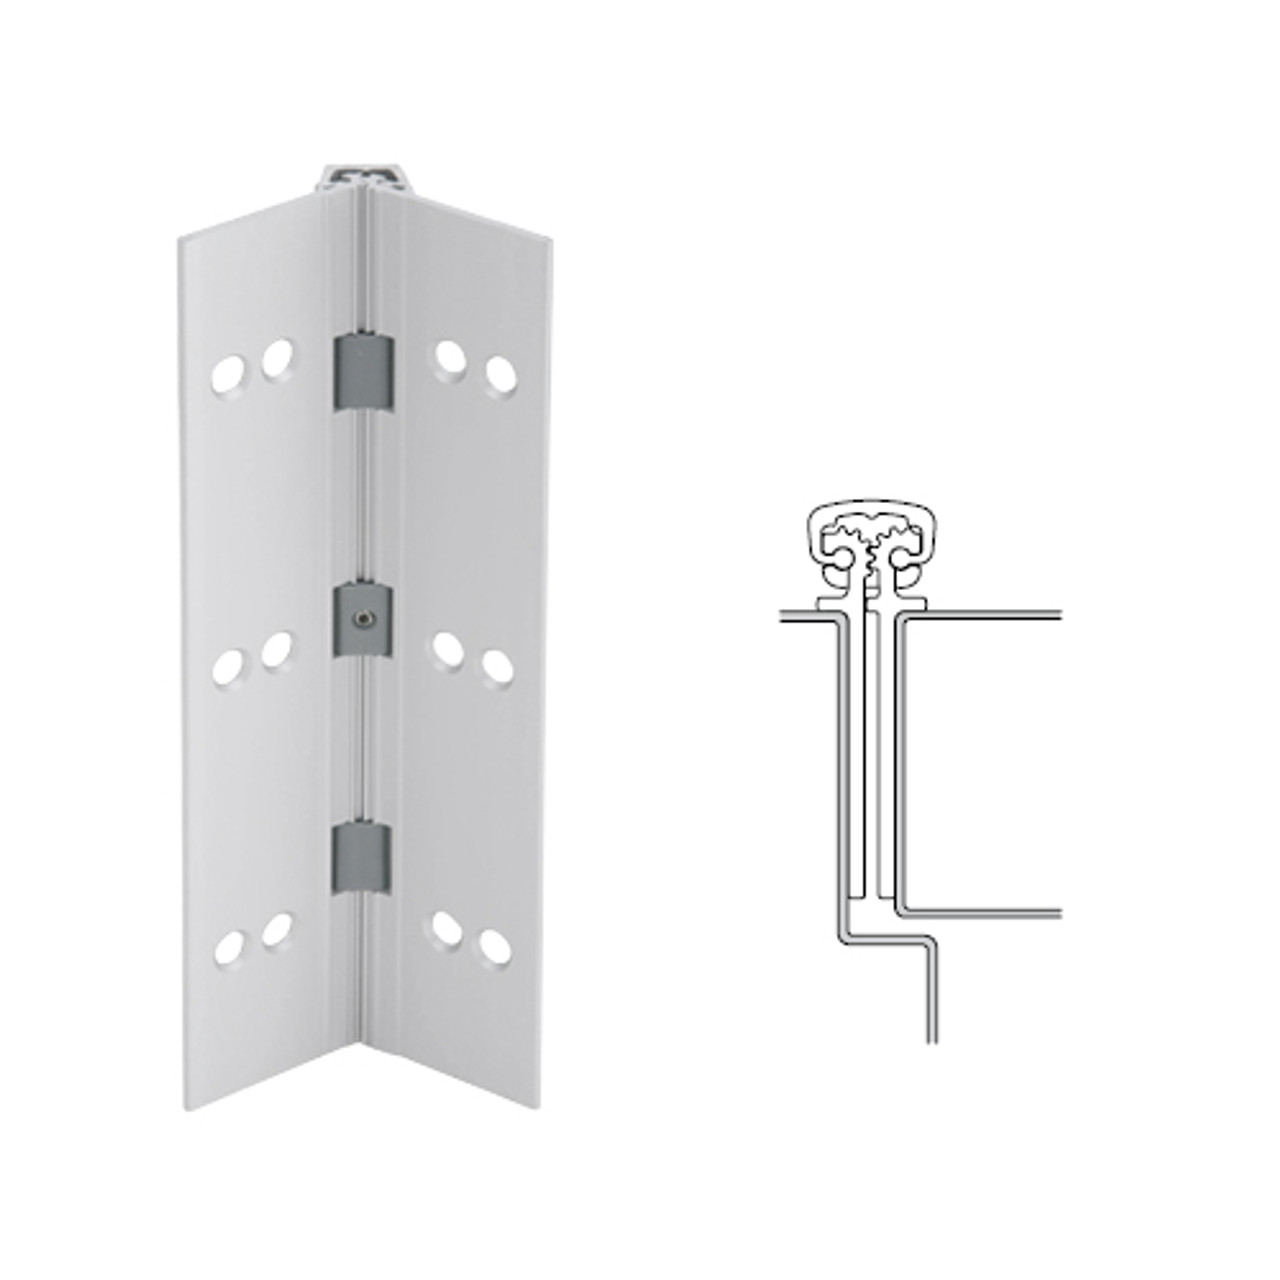 027XY-US28-120-SECHM IVES Full Mortise Continuous Geared Hinges with Security Screws - Hex Pin Drive in Satin Aluminum